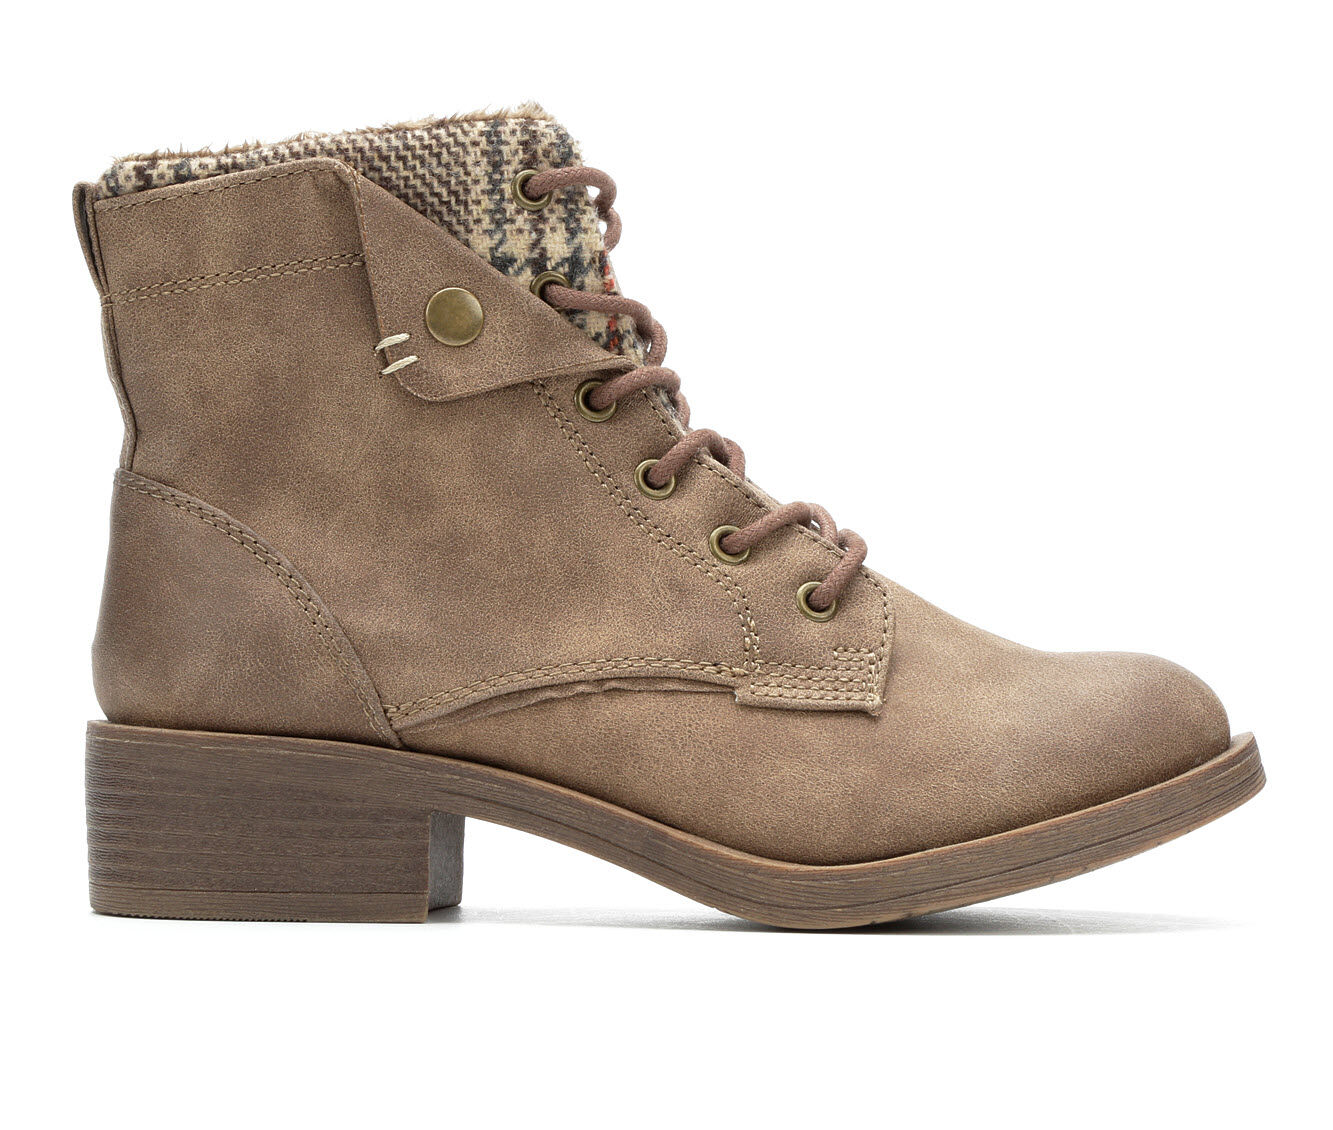 Women's Ankle Bootes, Booties, & Short Boots